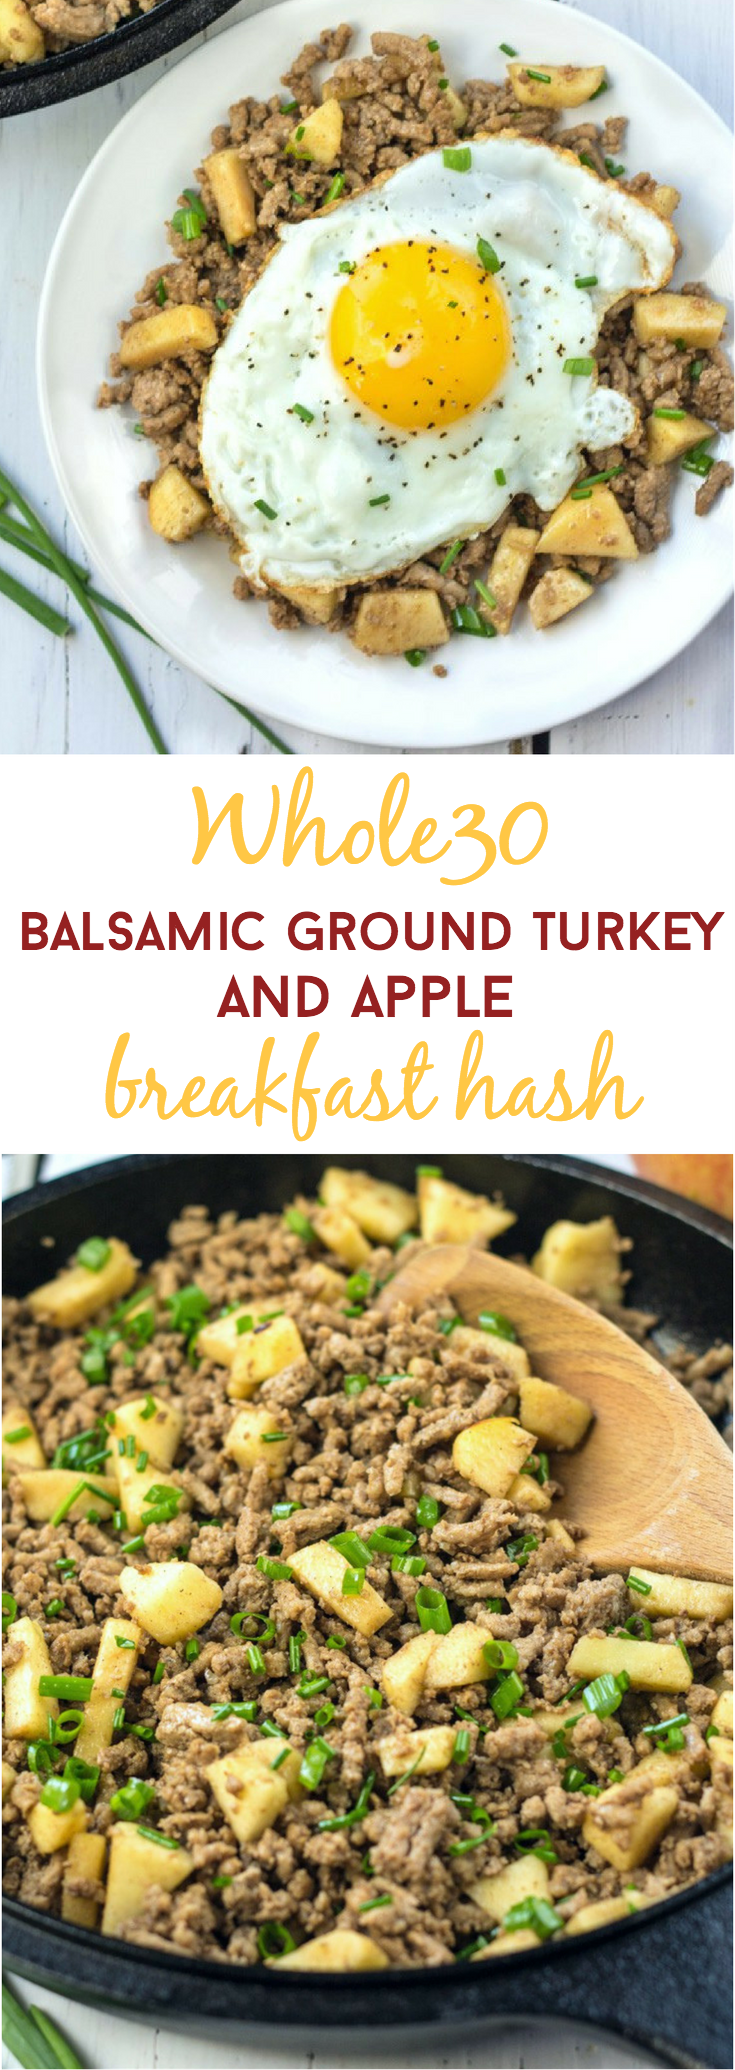 Whole30 compliant turkey & apple breakfast hash is perfect for a lean, protein-packed breakfast! Infused with the flavors of balsamic, cardamom, and sweet apples